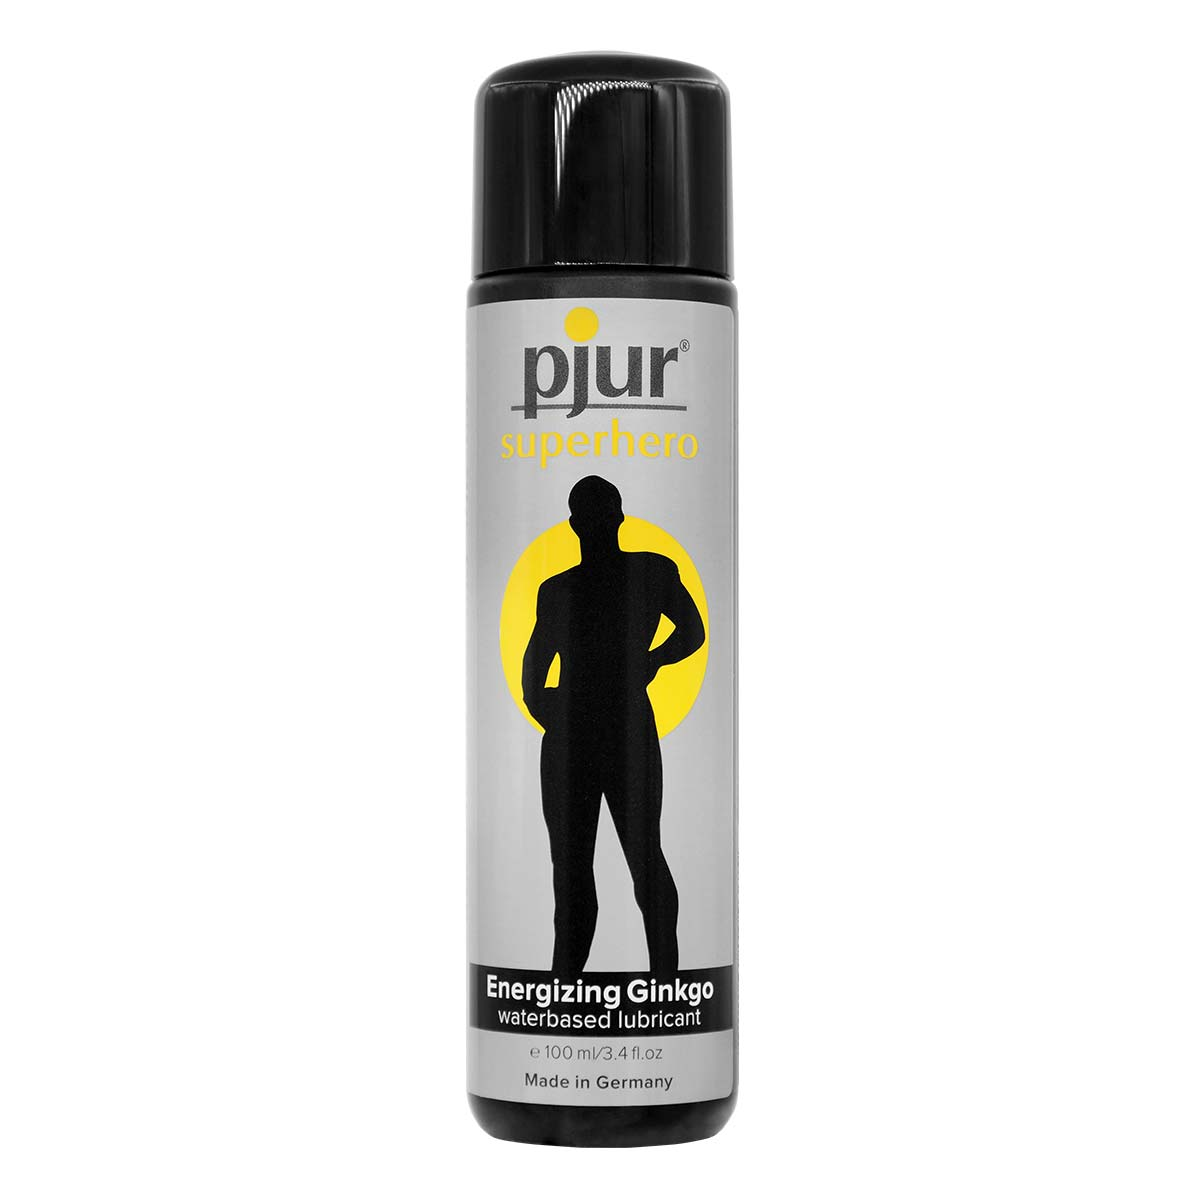 pjur superhero 100ml Water-based Lubricant